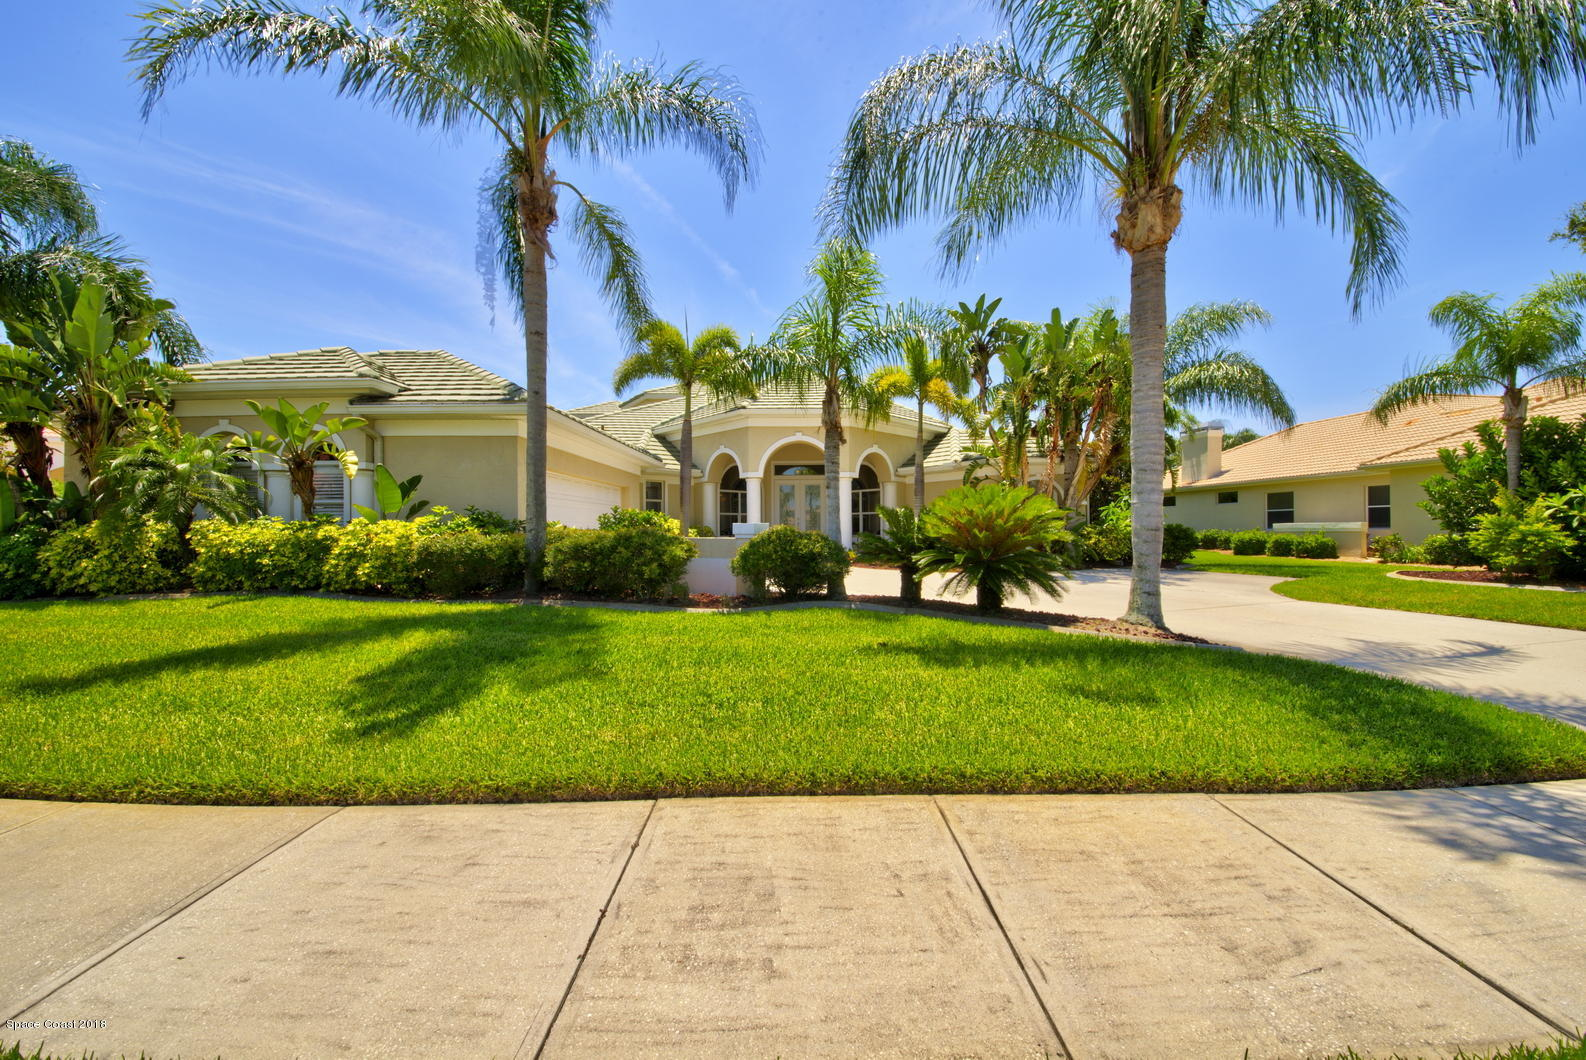 Single Family Home for Sale at 1073 Balmoral 1073 Balmoral Melbourne, Florida 32940 United States